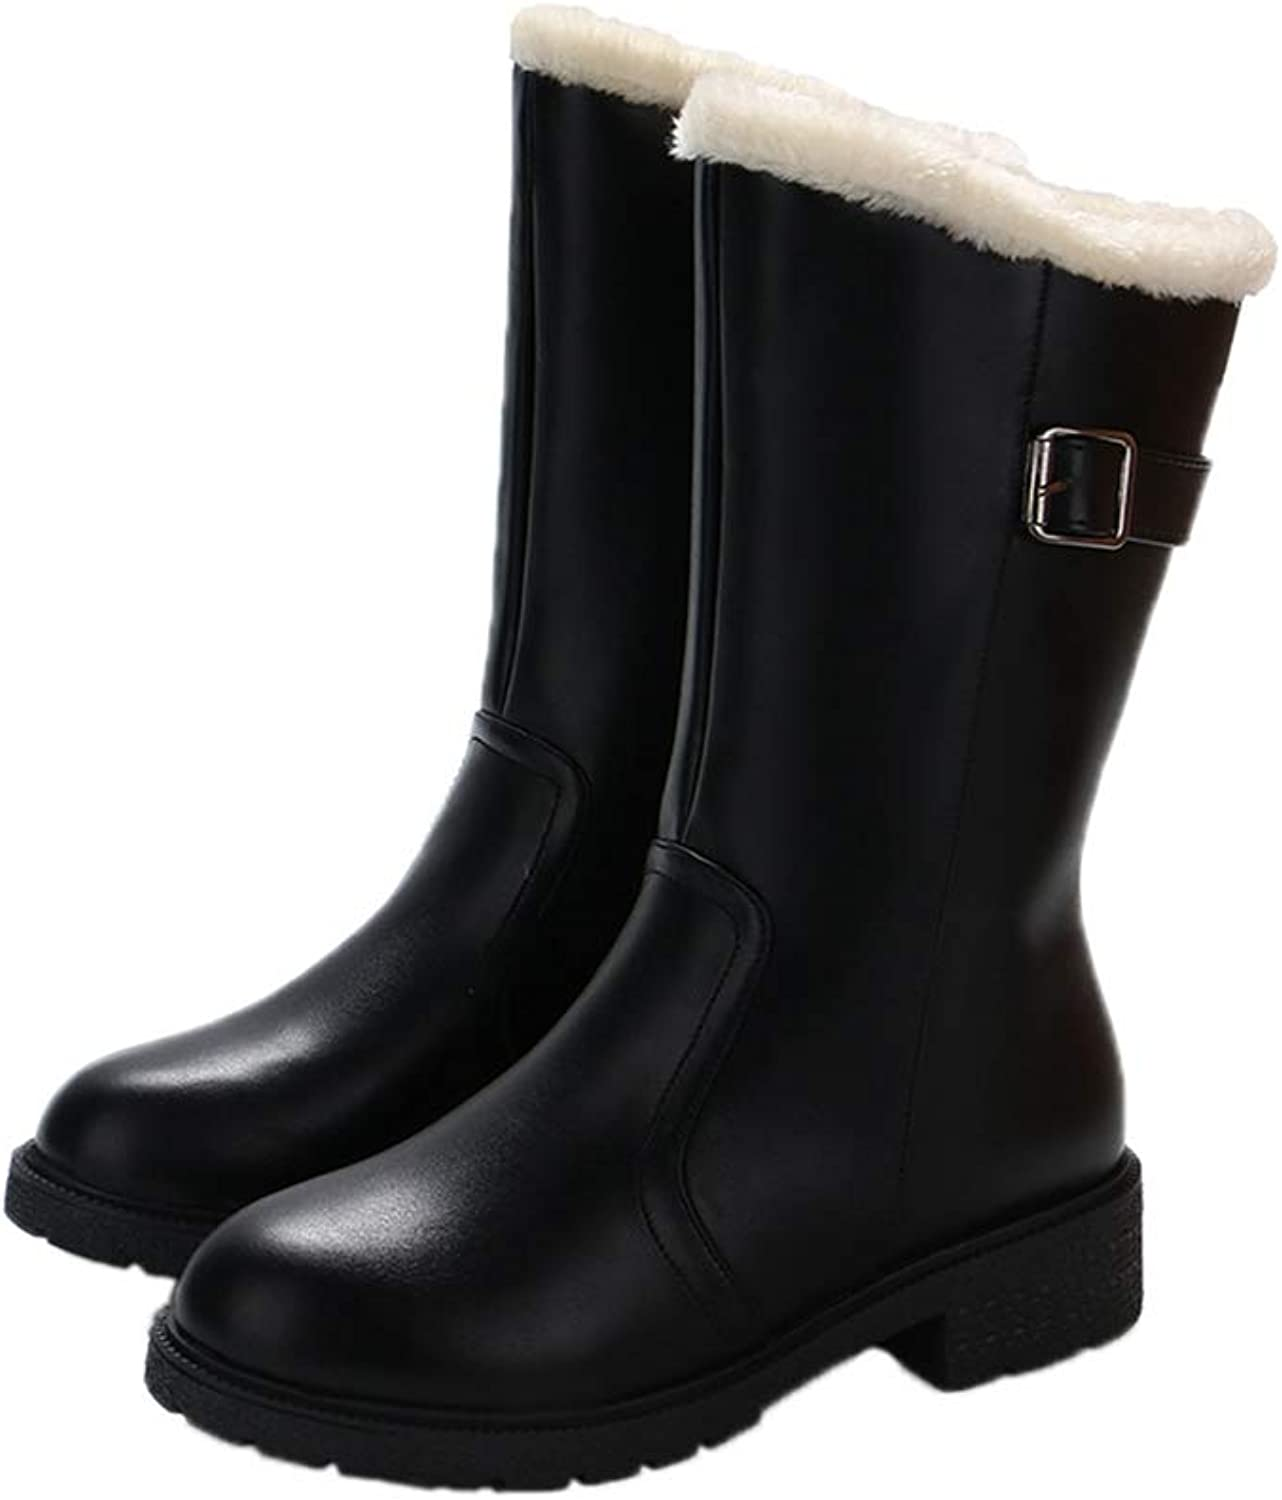 Mid Calf Women's Rain Boots Fall Fur Inside Black shoes Woman 4cm Med Heels Female Casual Buckle Footwear